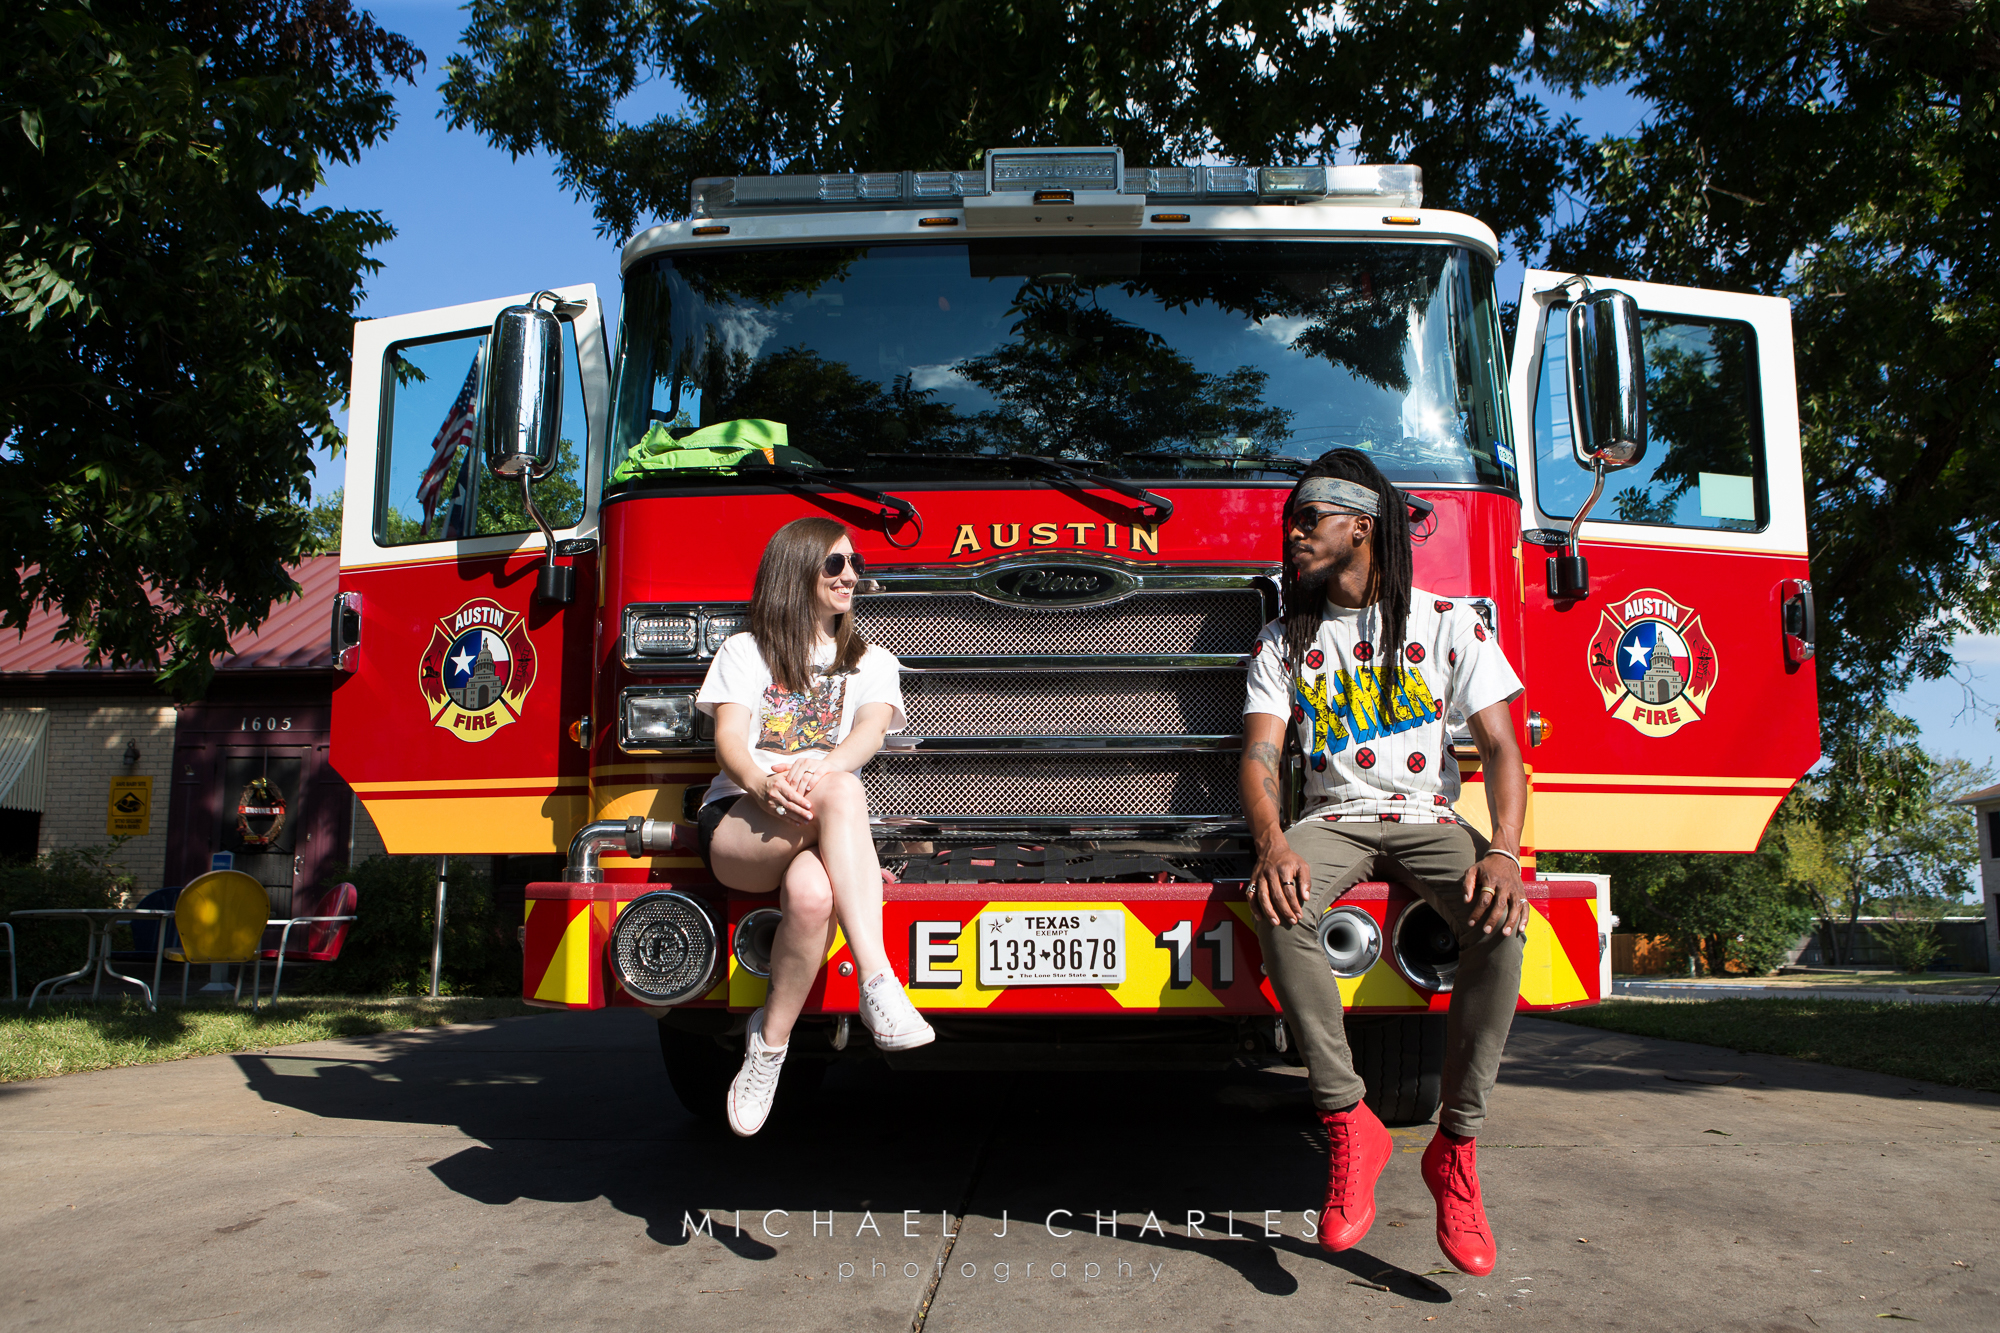 Austin fire engine and wardrobe in sync!